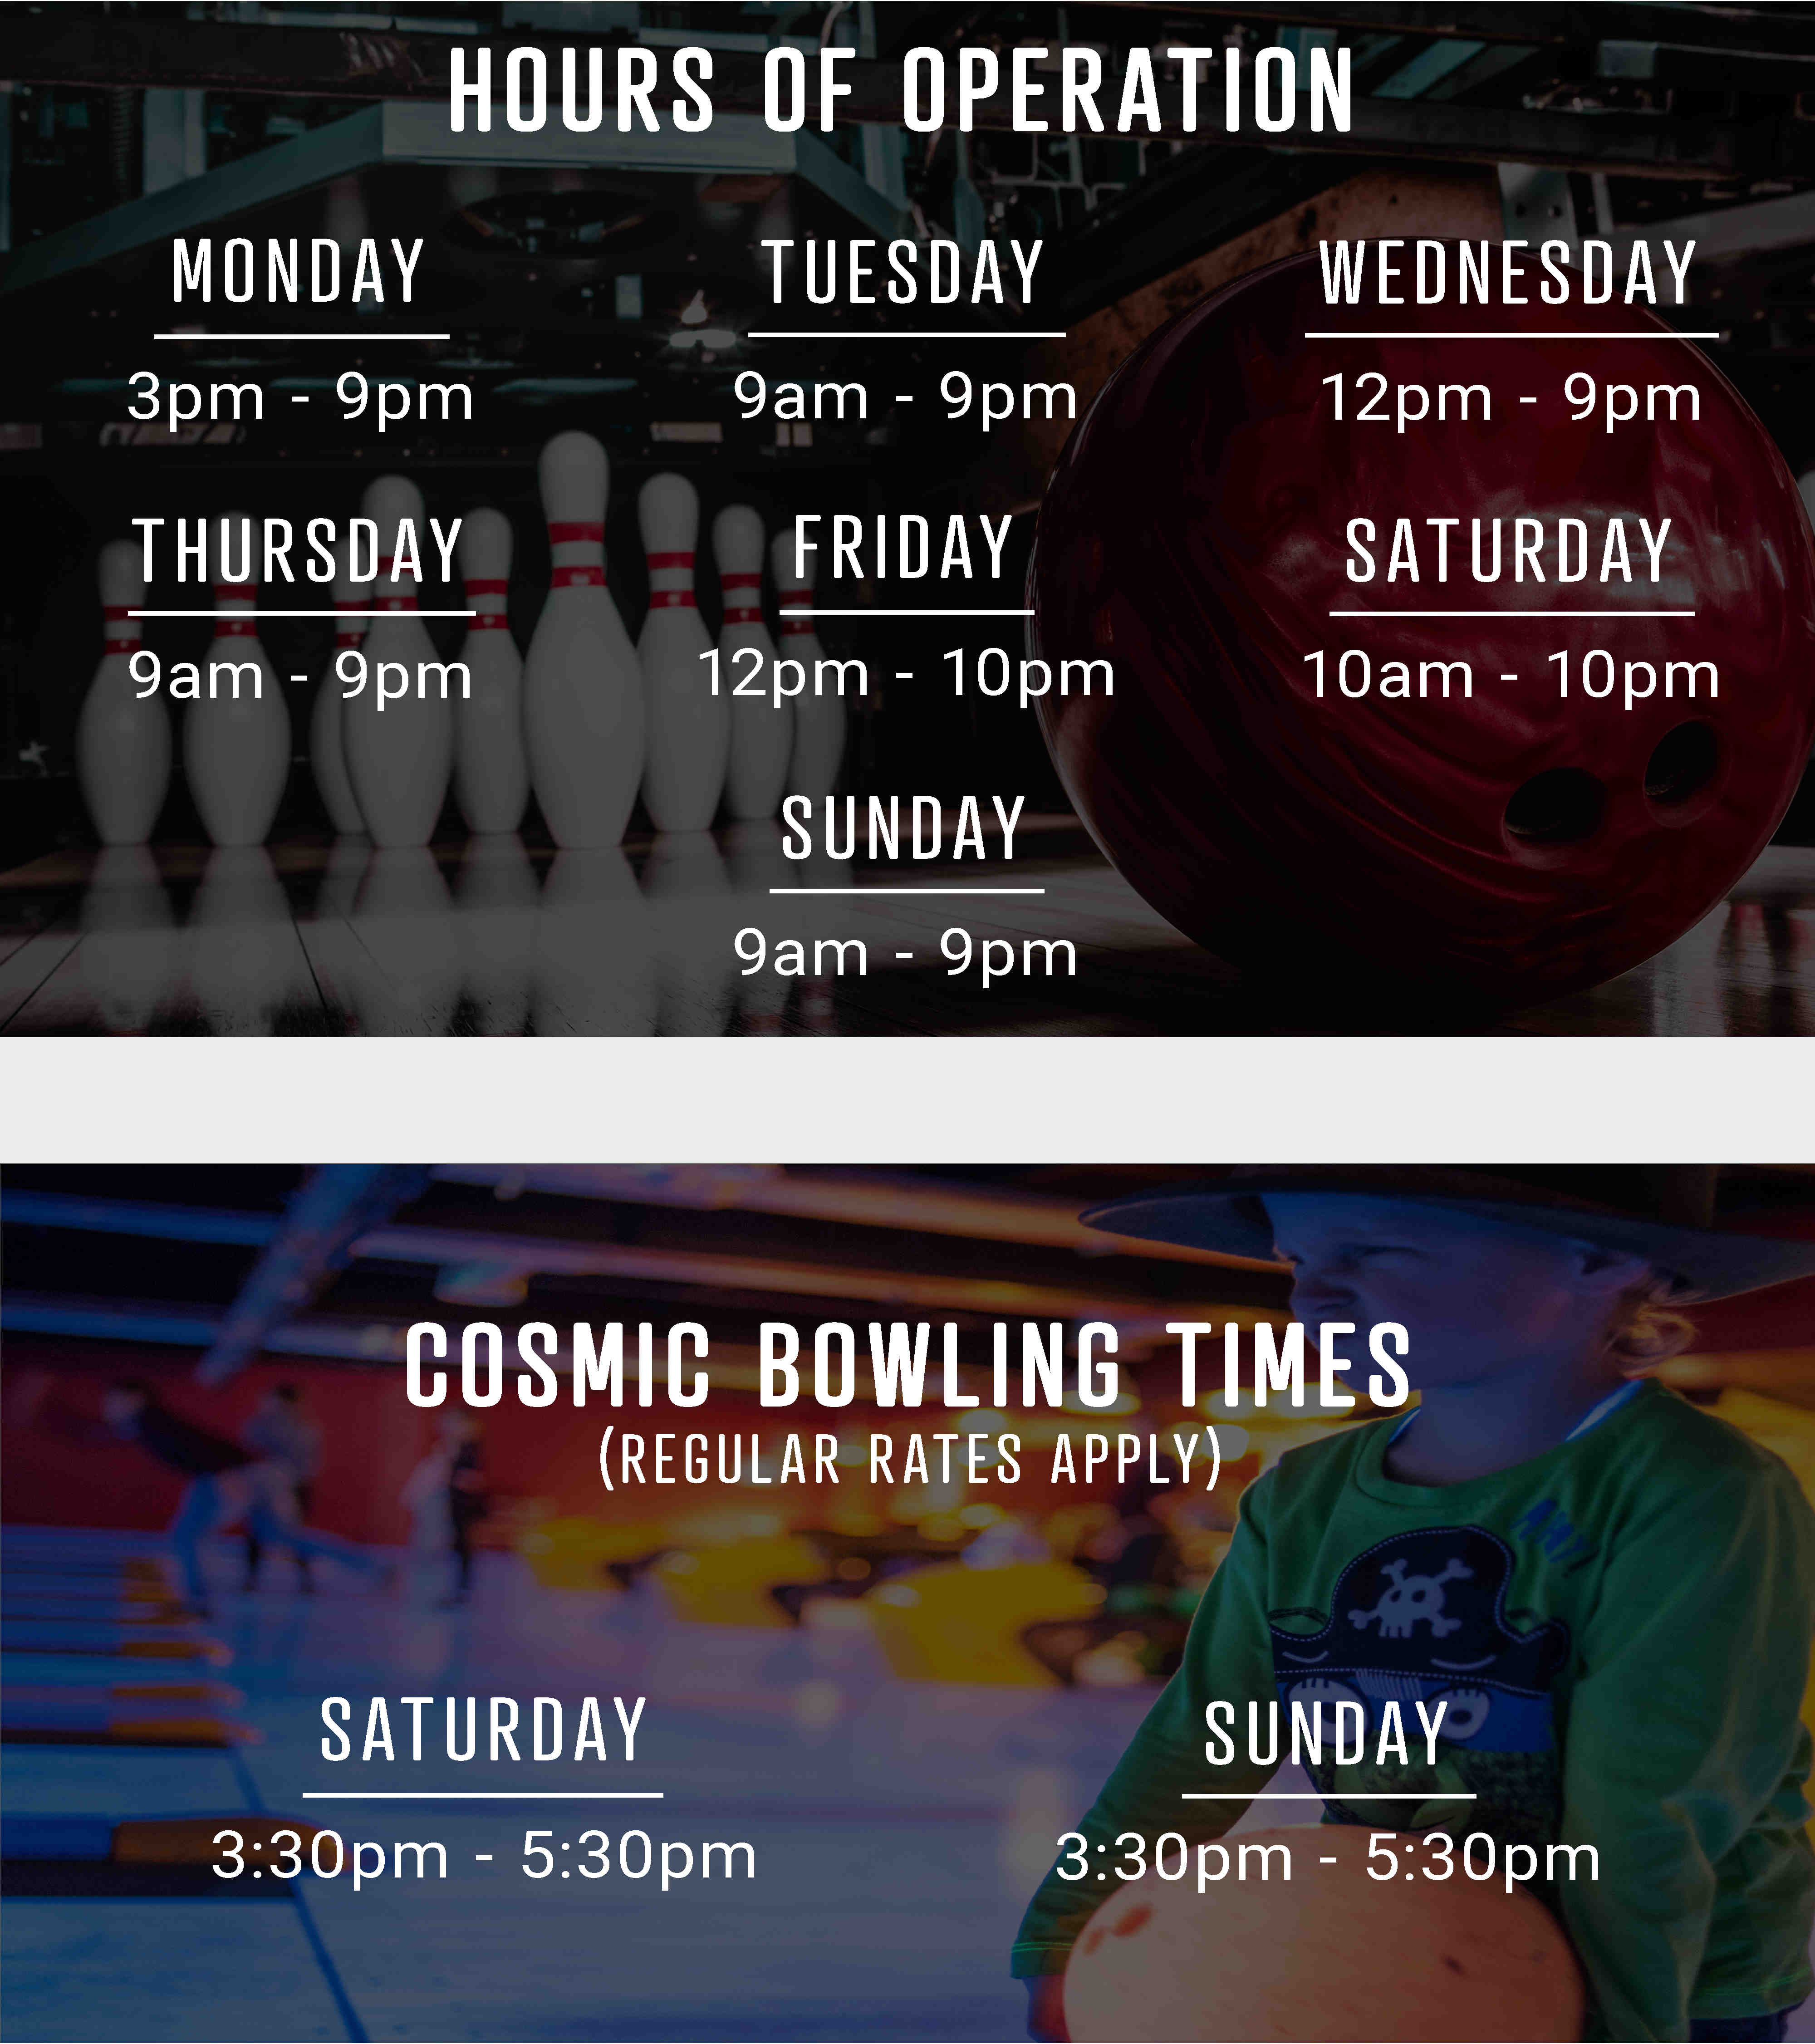 Hours of operation and cosmic bowling times